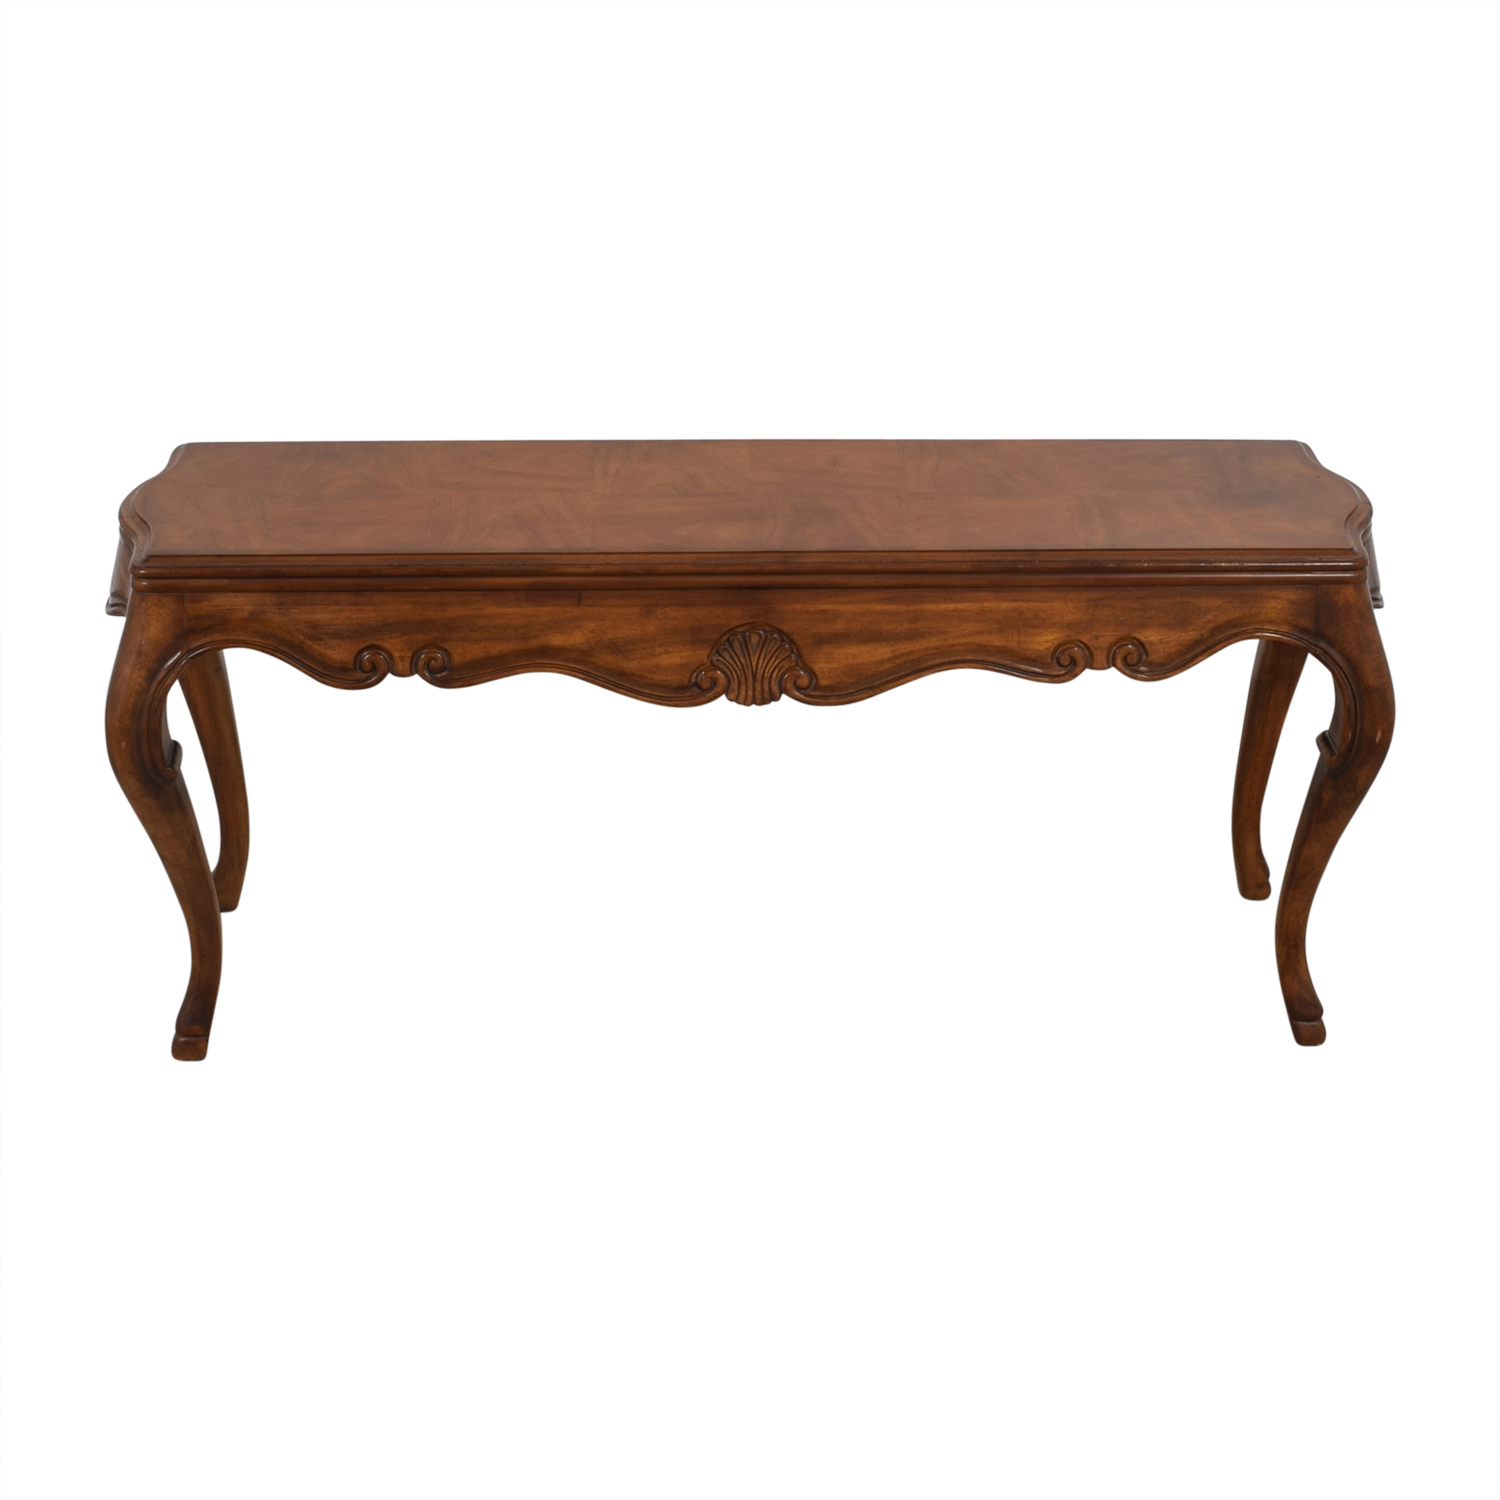 Astounding 82 Off Vintage Walnut Sofa Table Tables Andrewgaddart Wooden Chair Designs For Living Room Andrewgaddartcom